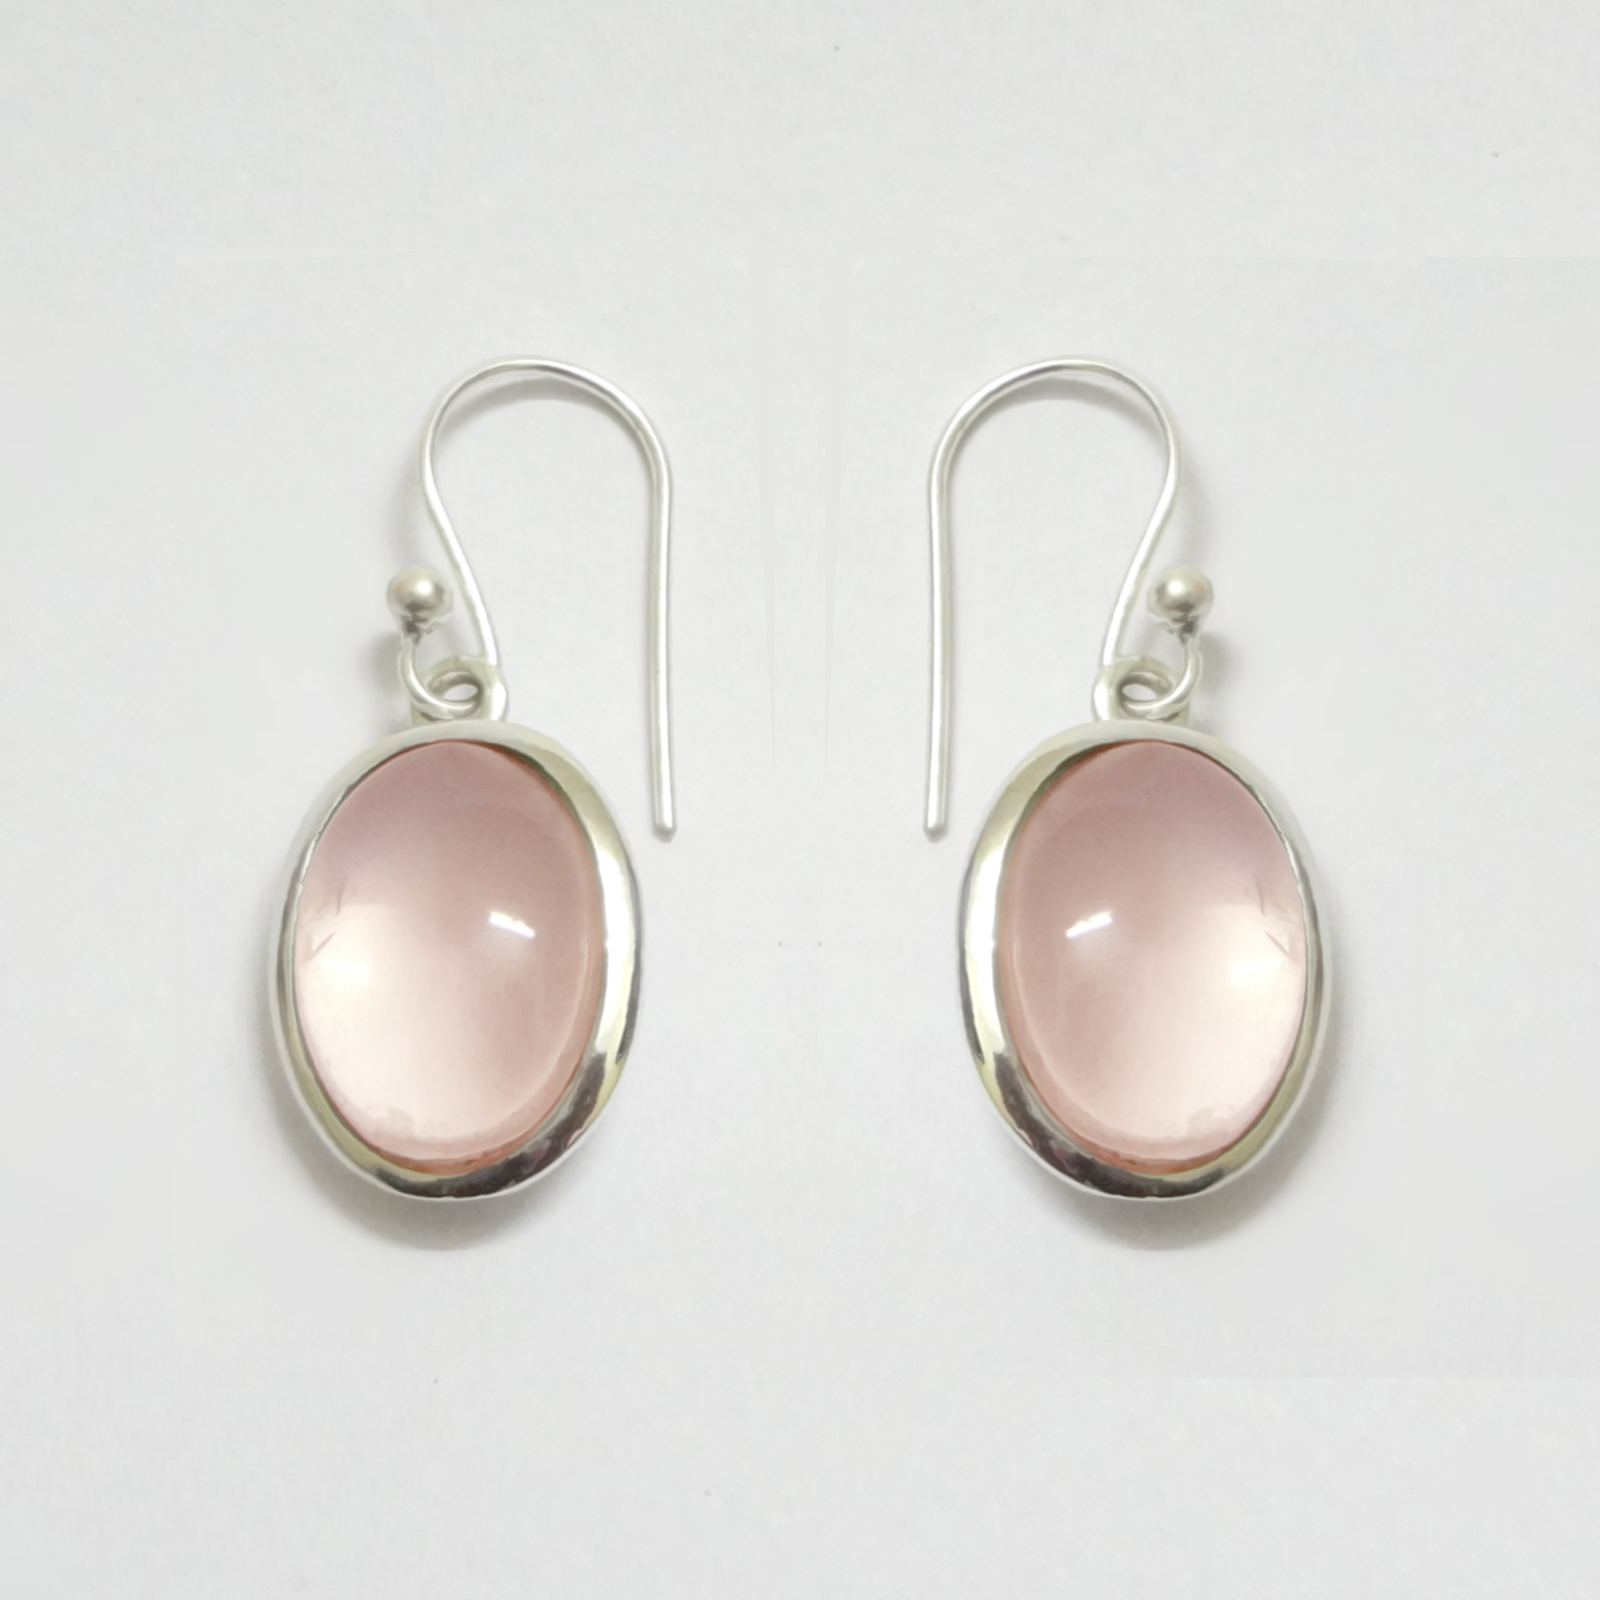 Rose Quartz 925 Sterling Silver Dangle Earrings, Handmade Jewelry for Women, Ste